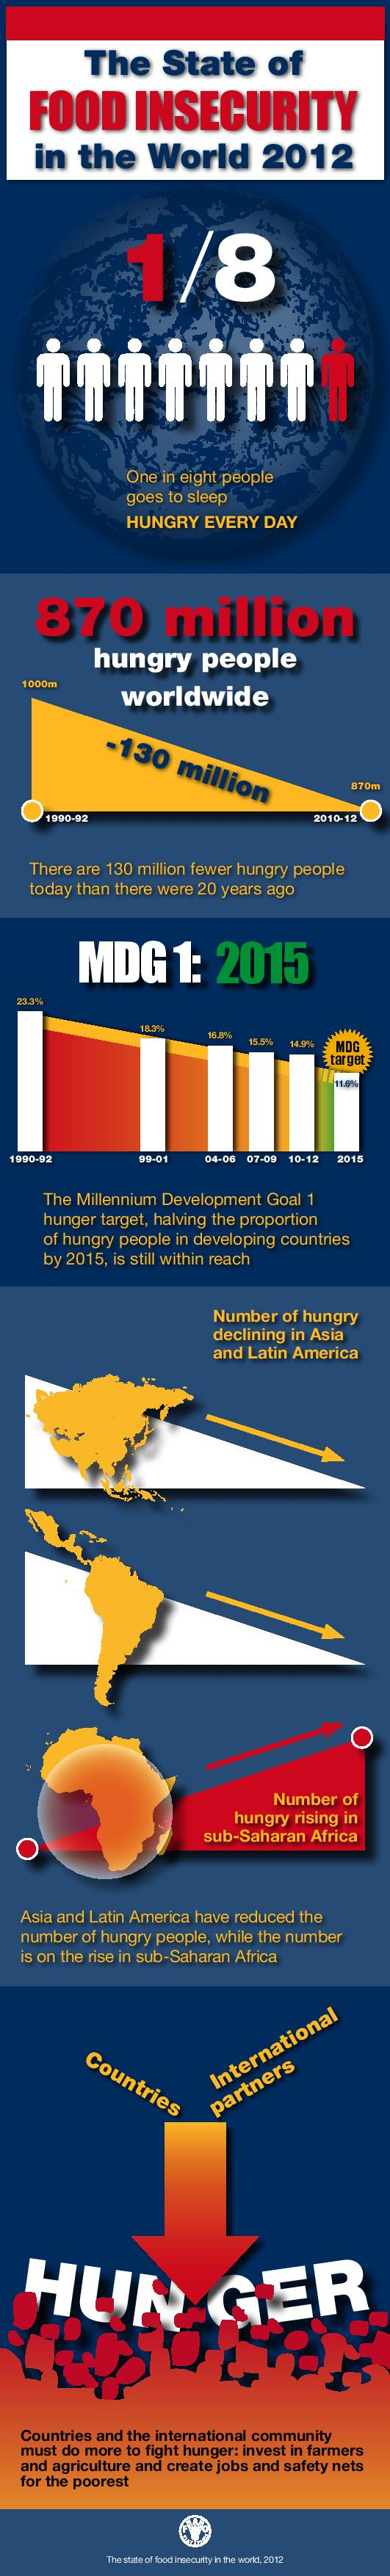 the-state-of-food-insecurity-in-the-world-2012_509a1cbd3ac30